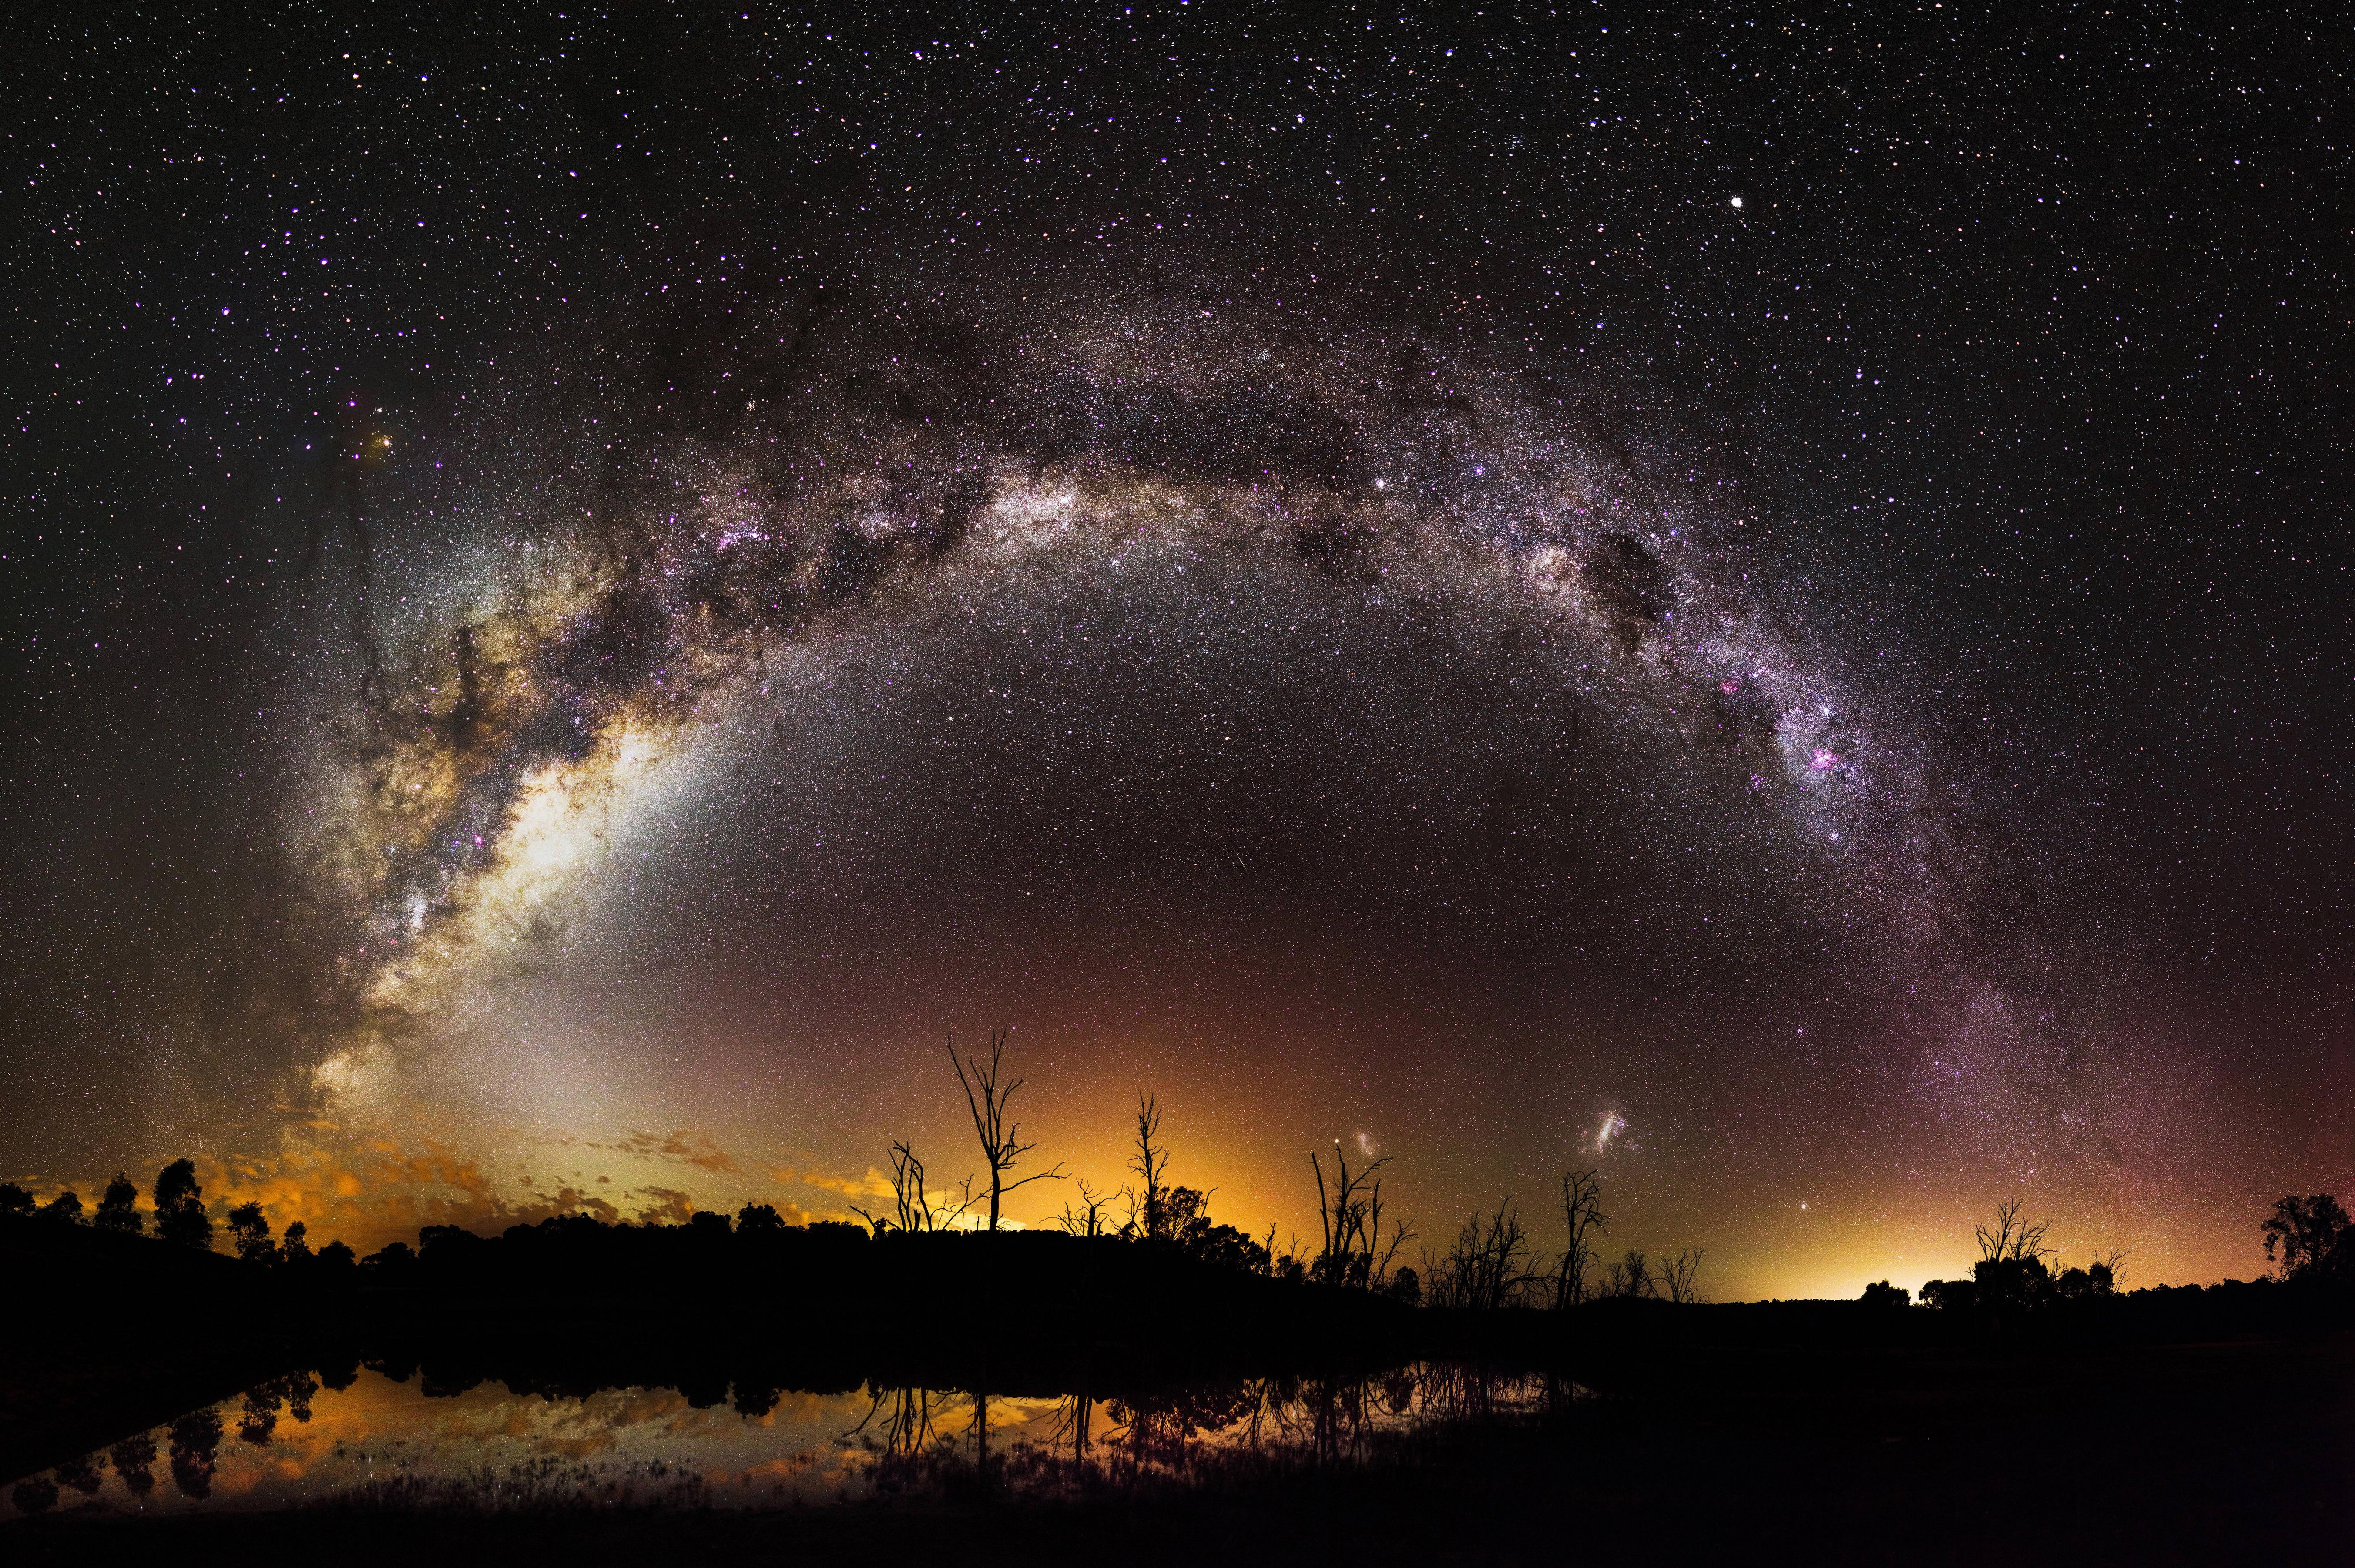 Taking photos of milky way The 100 Most Amazing Space Photos of 2017